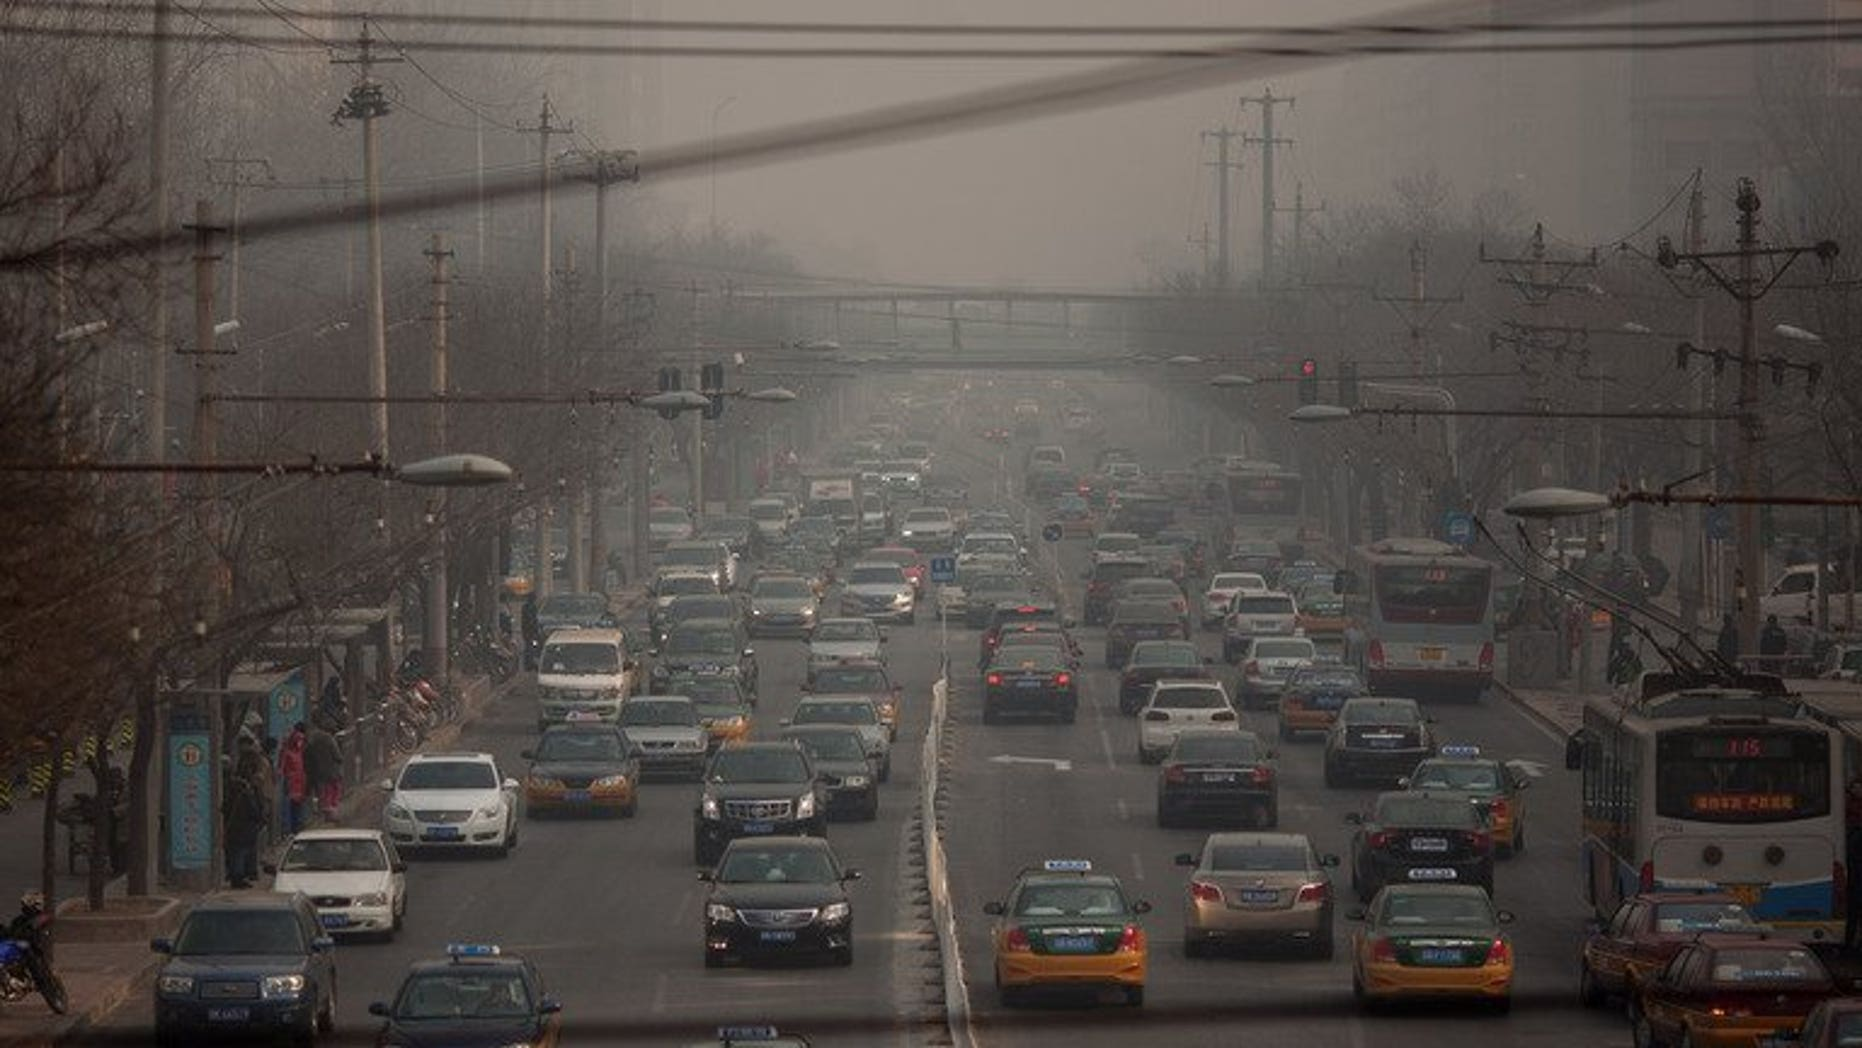 Traffic makes its way through Beijing on January 12, 2013. A Chinese man threw a two-year-old girl to the ground, killing her, after her mother apparently refused to make way for him to park his car, state media reported Thursday.